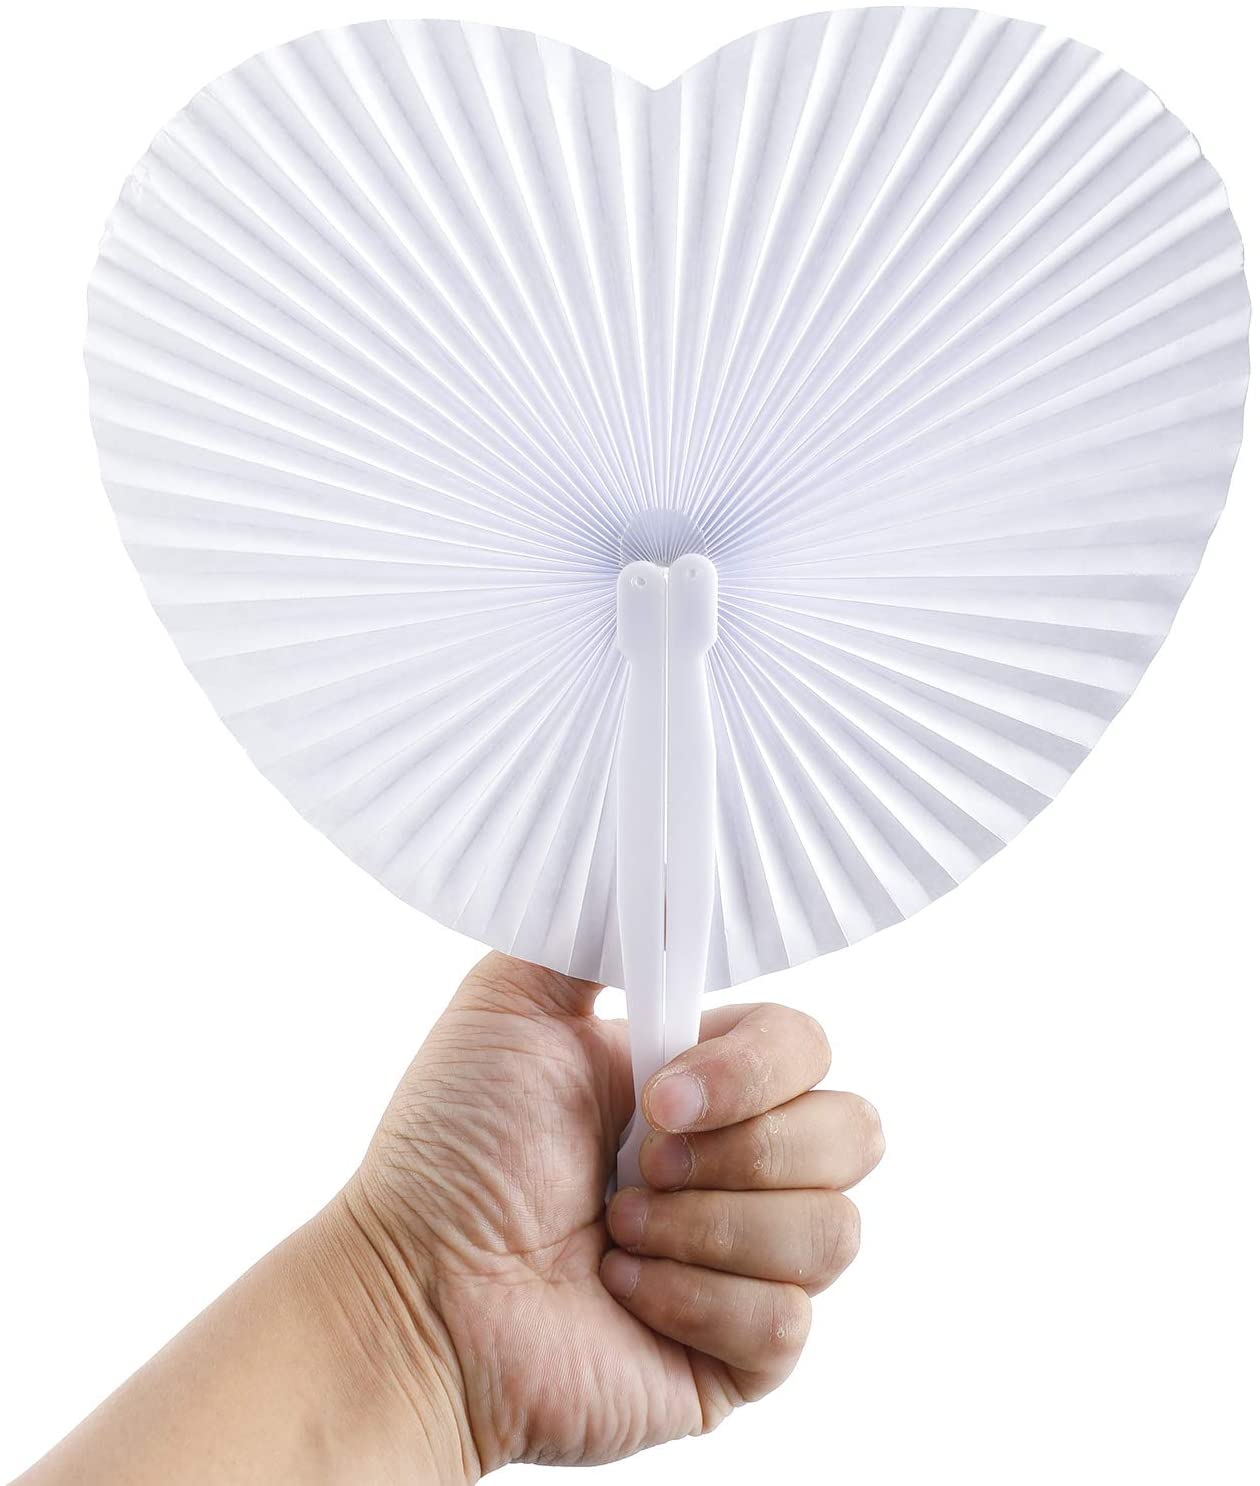 HighFree 60 Packs White Folding Fans Wedding Heart Shaped Paper Fans with Plastic Handle for Favor Party Celebration Event